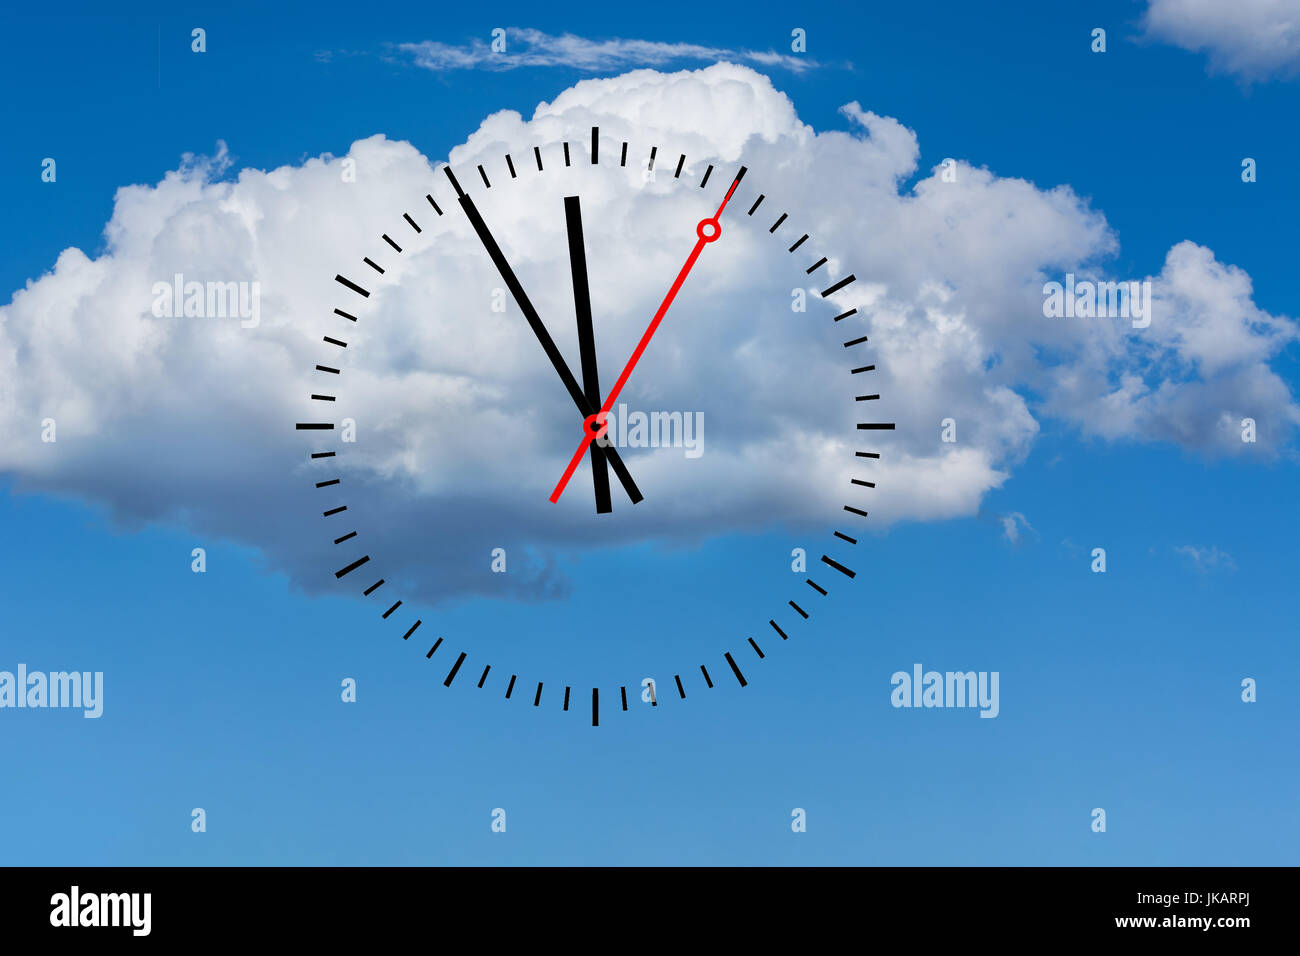 Clock, digits with a minute hand and a red second hand indicates the time 5 before 12. Copy space in front of sky - Stock Image